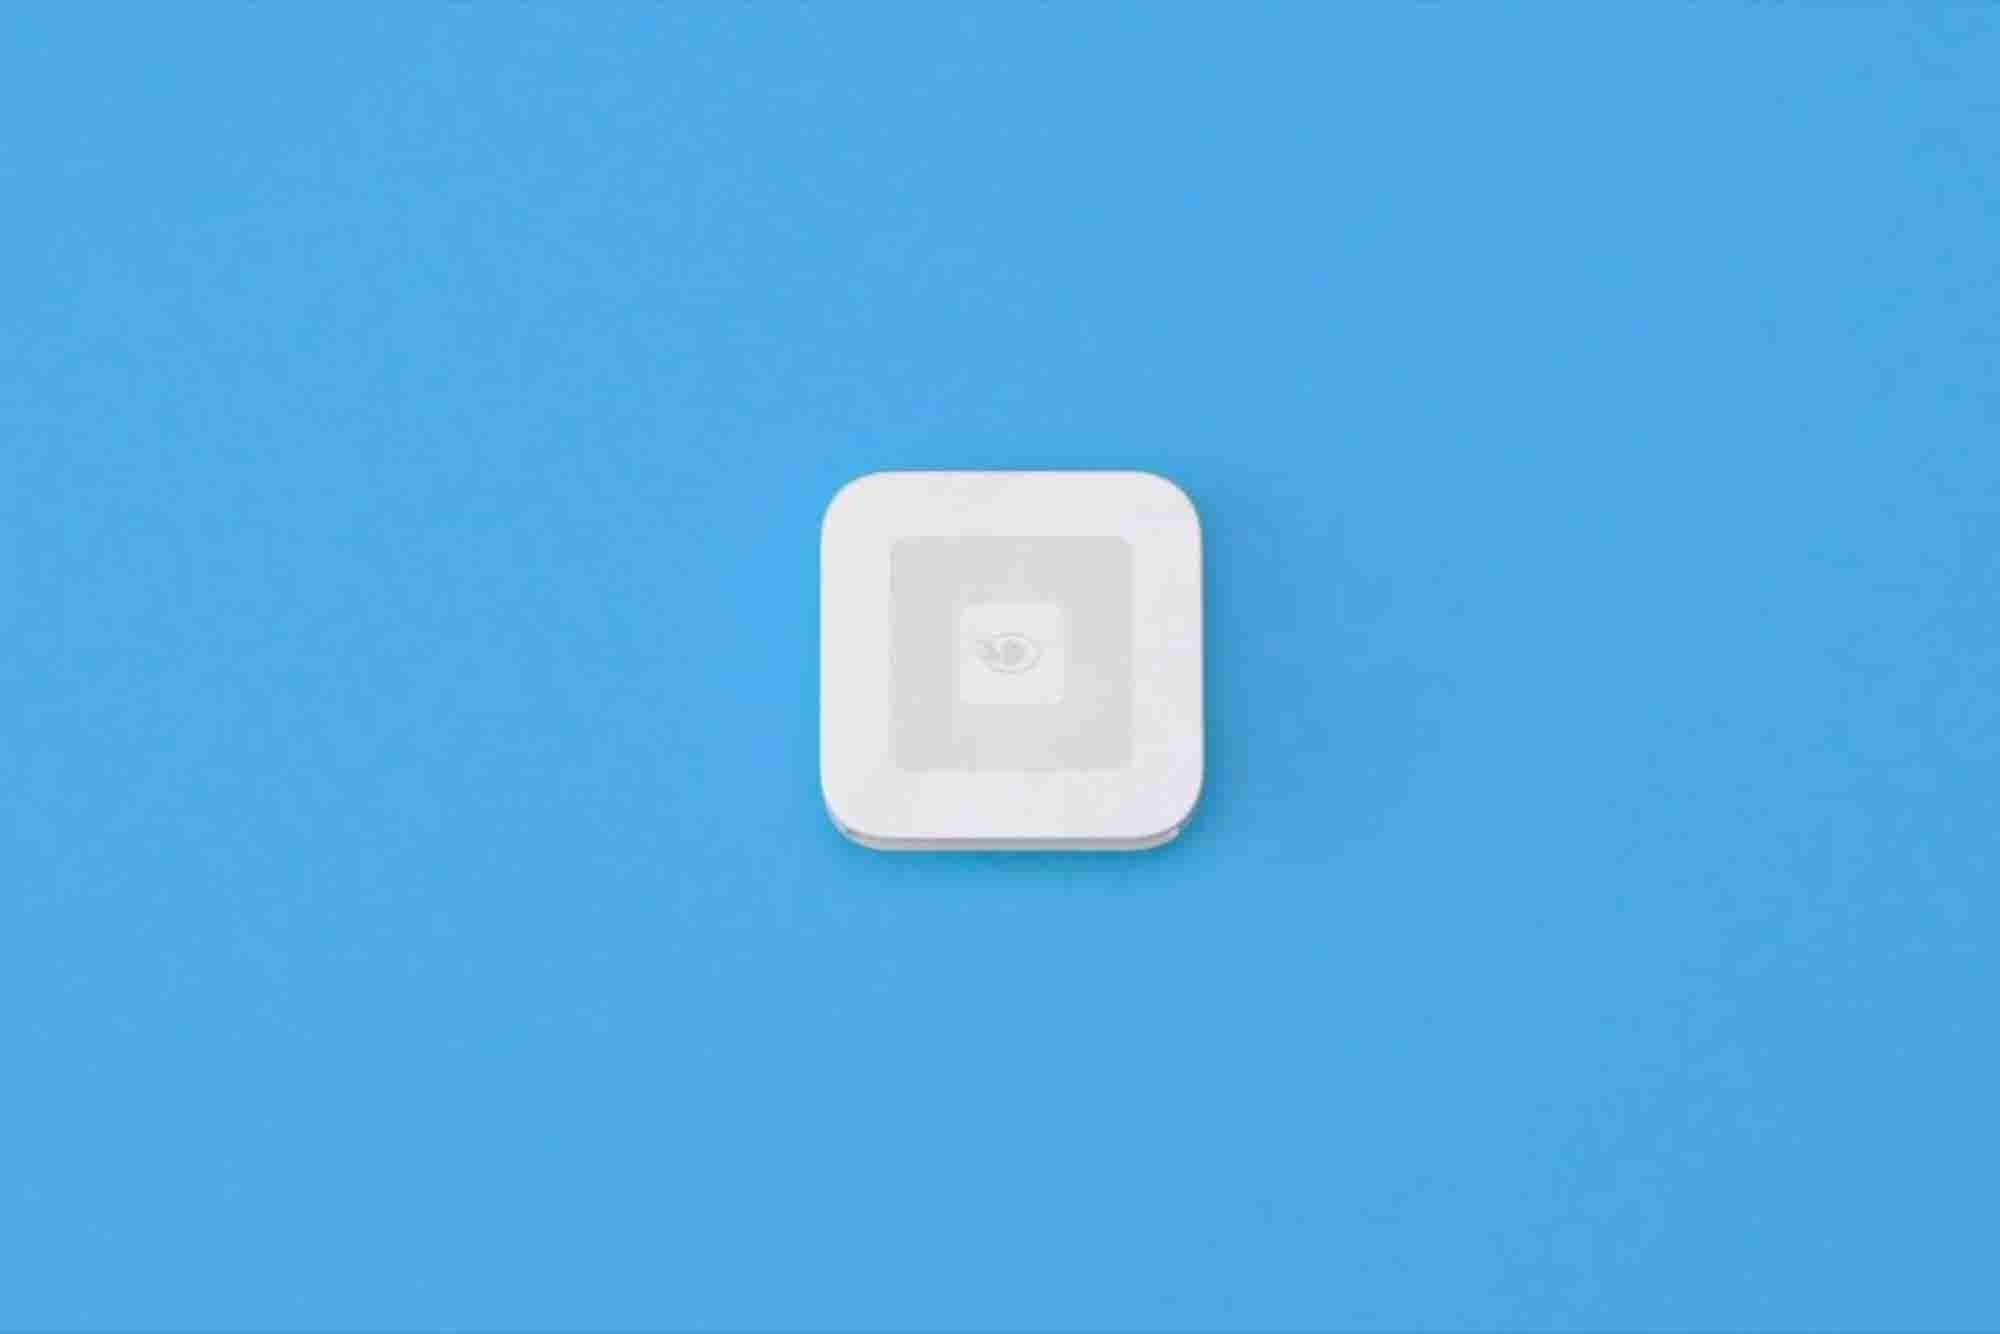 Square Acquires Weebly for $365 Million